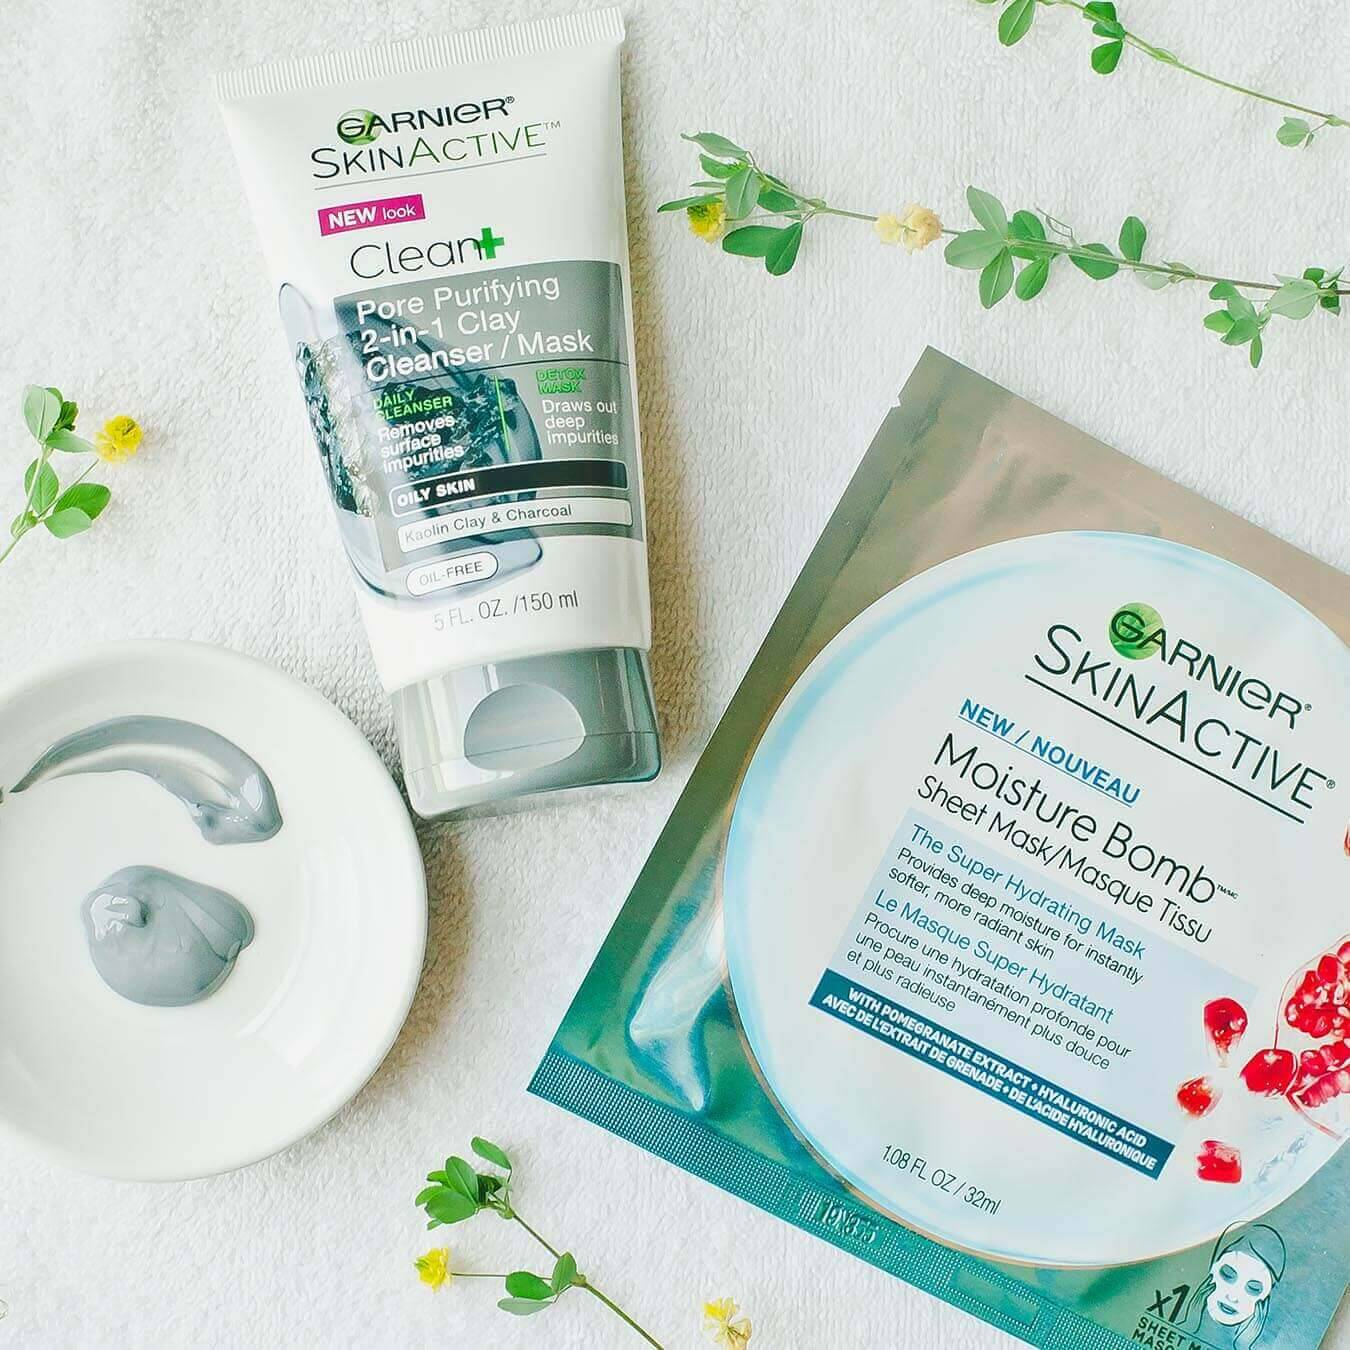 Garnier SkinActive Moisture Bomb Sheet Mask with Pomegranate Extract next to SkinActive Clean+ Pore Purifying 2-in-1 Clay Cleanser/Mask and a white dish with some cleanser/mask squeezed from the tube and smeared in an arc on a white towel strewn with yellow wildflowers.